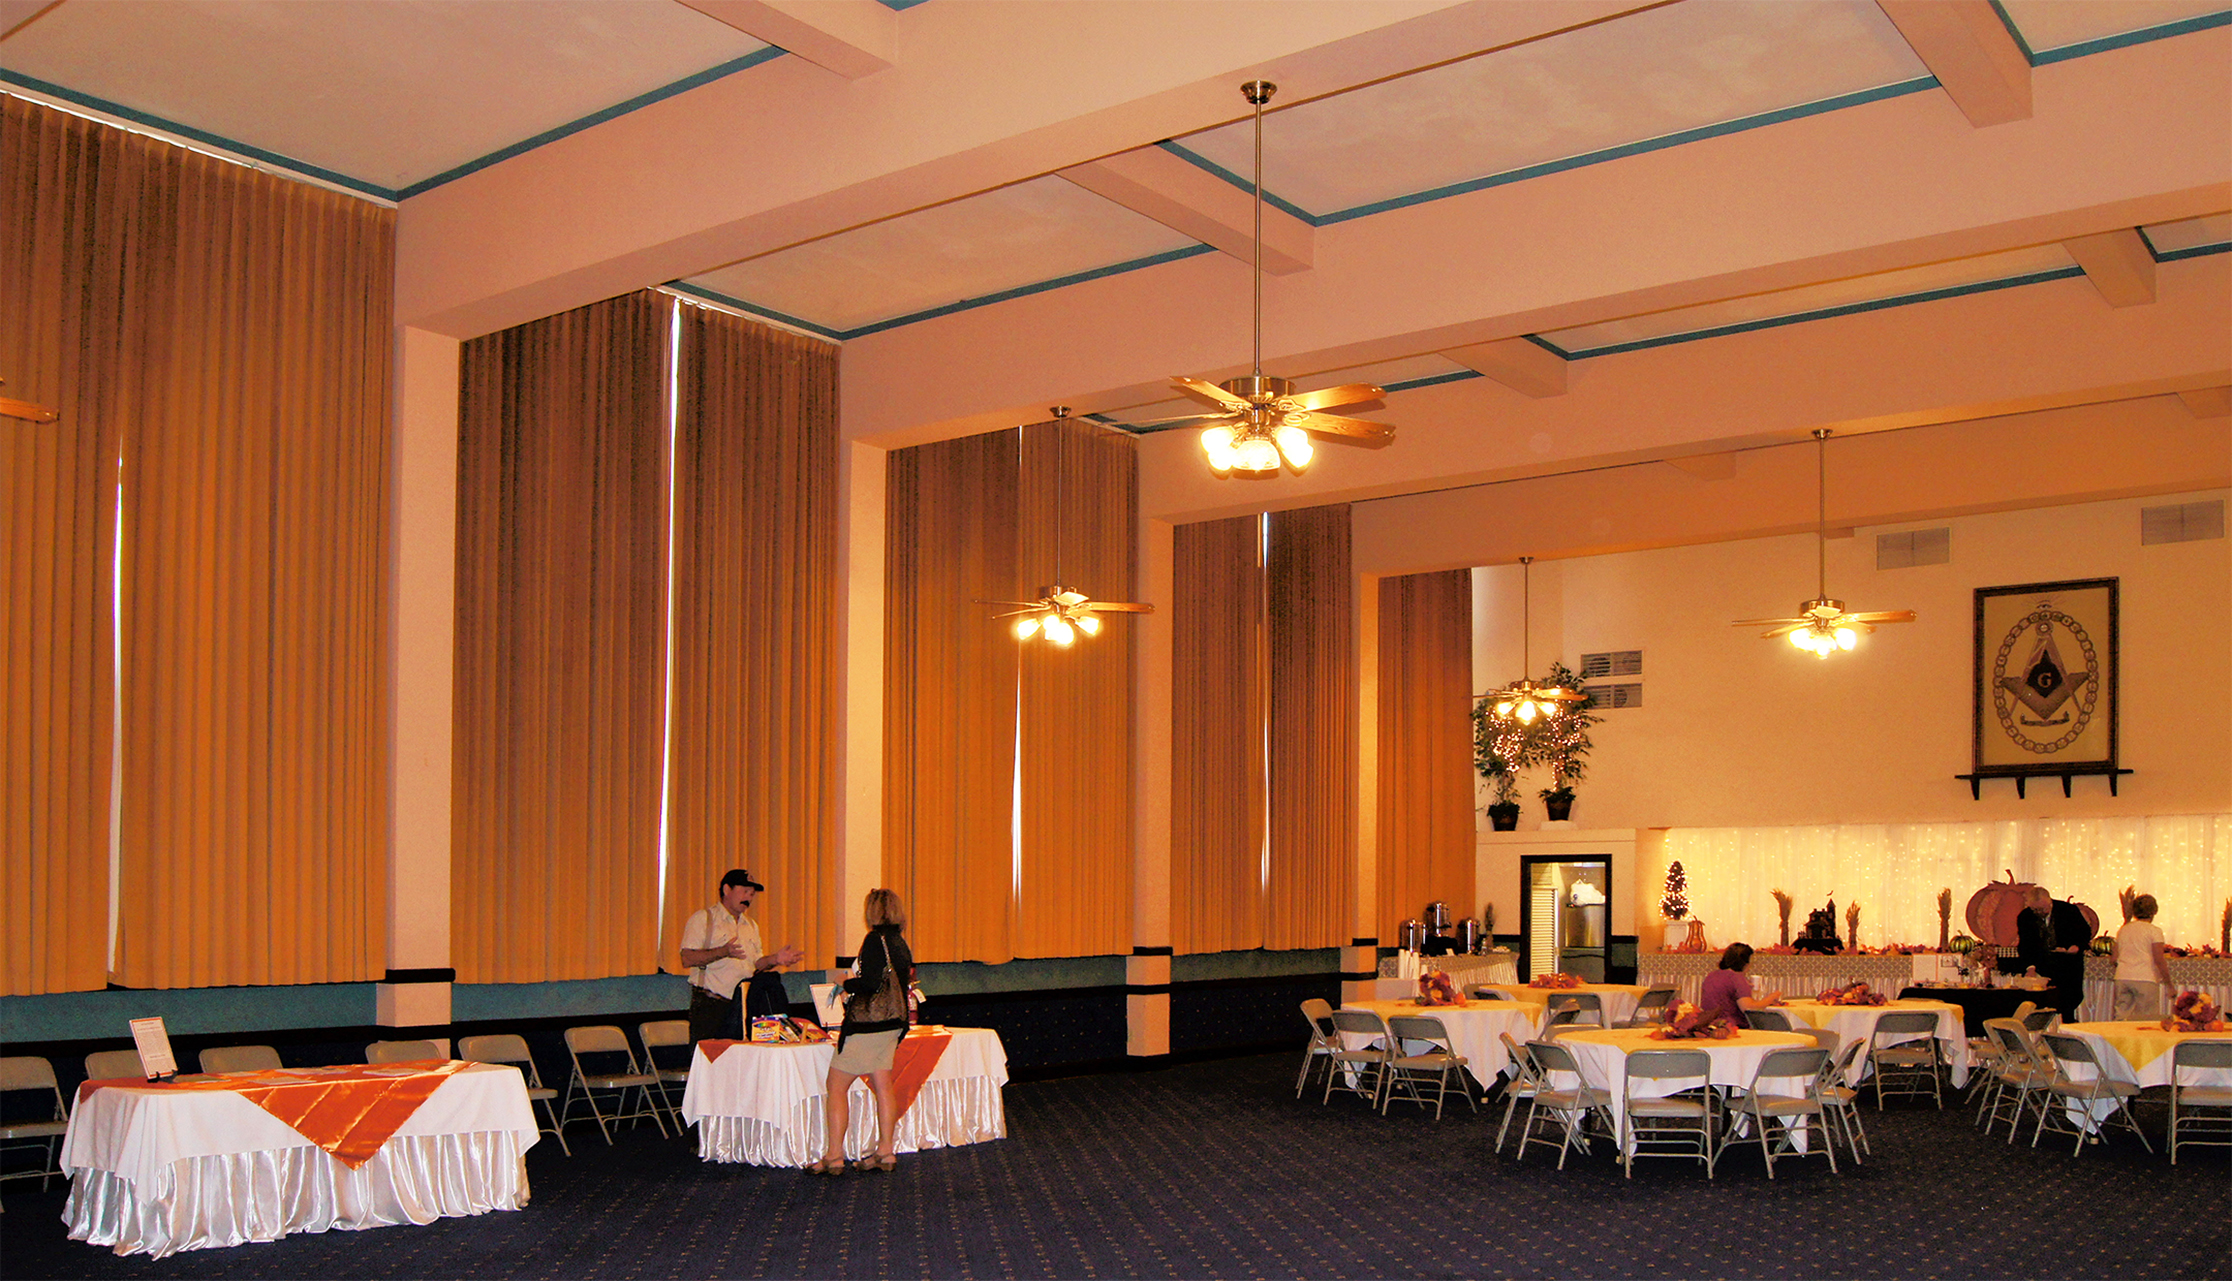 Dining room on the first floor of the masonic lodge the dining room